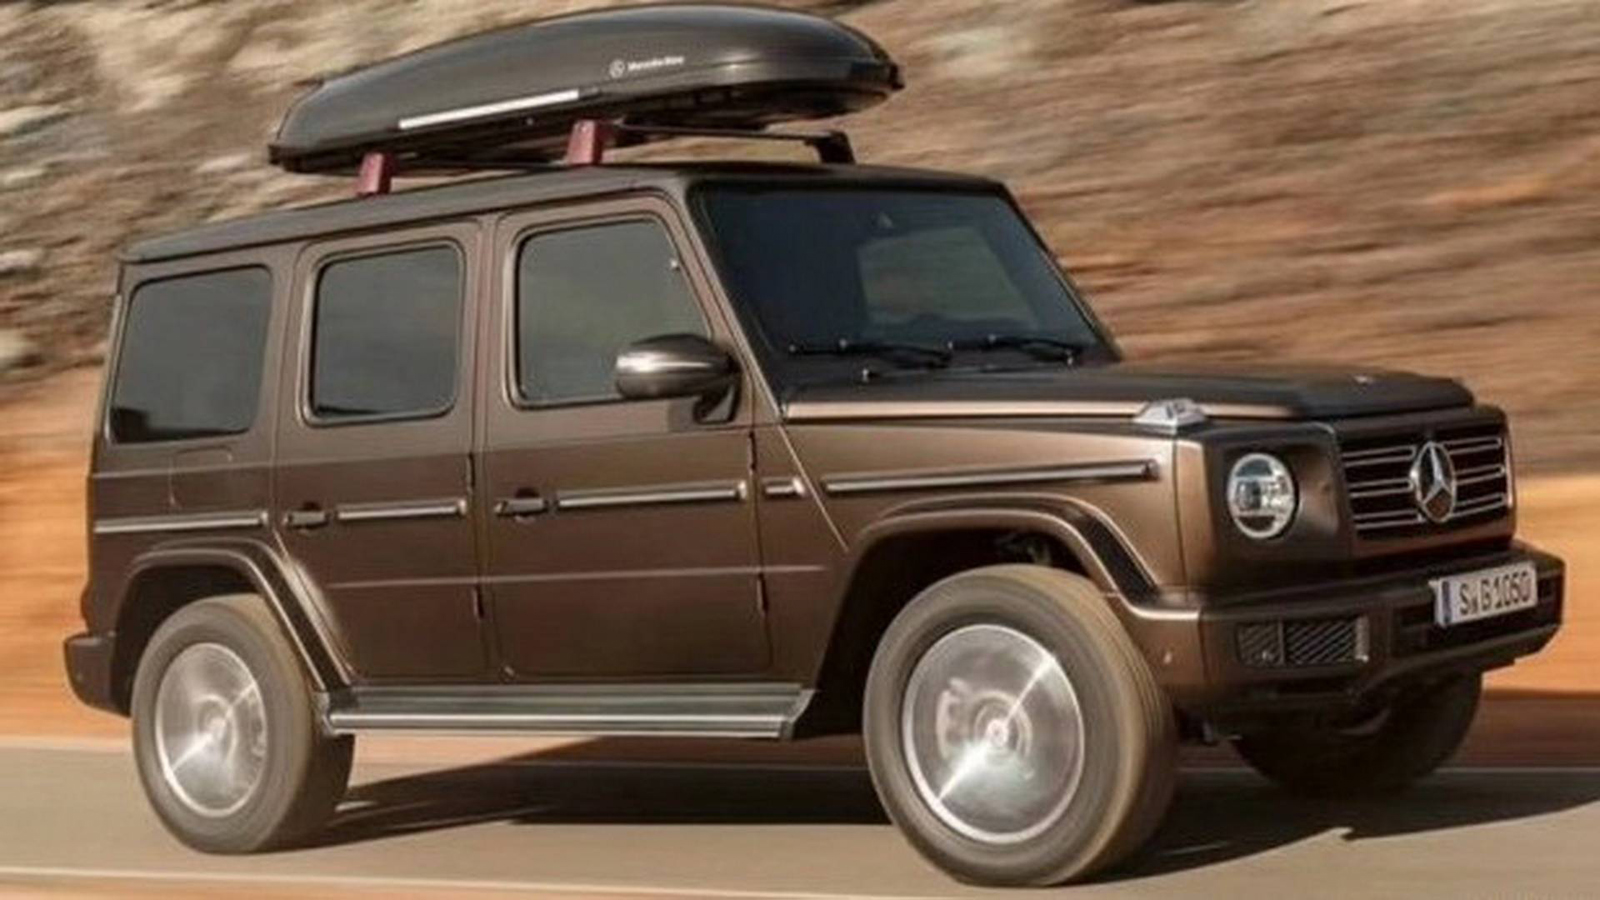 2019 mercedes benz g class leaks in full ahead of debut news. Black Bedroom Furniture Sets. Home Design Ideas